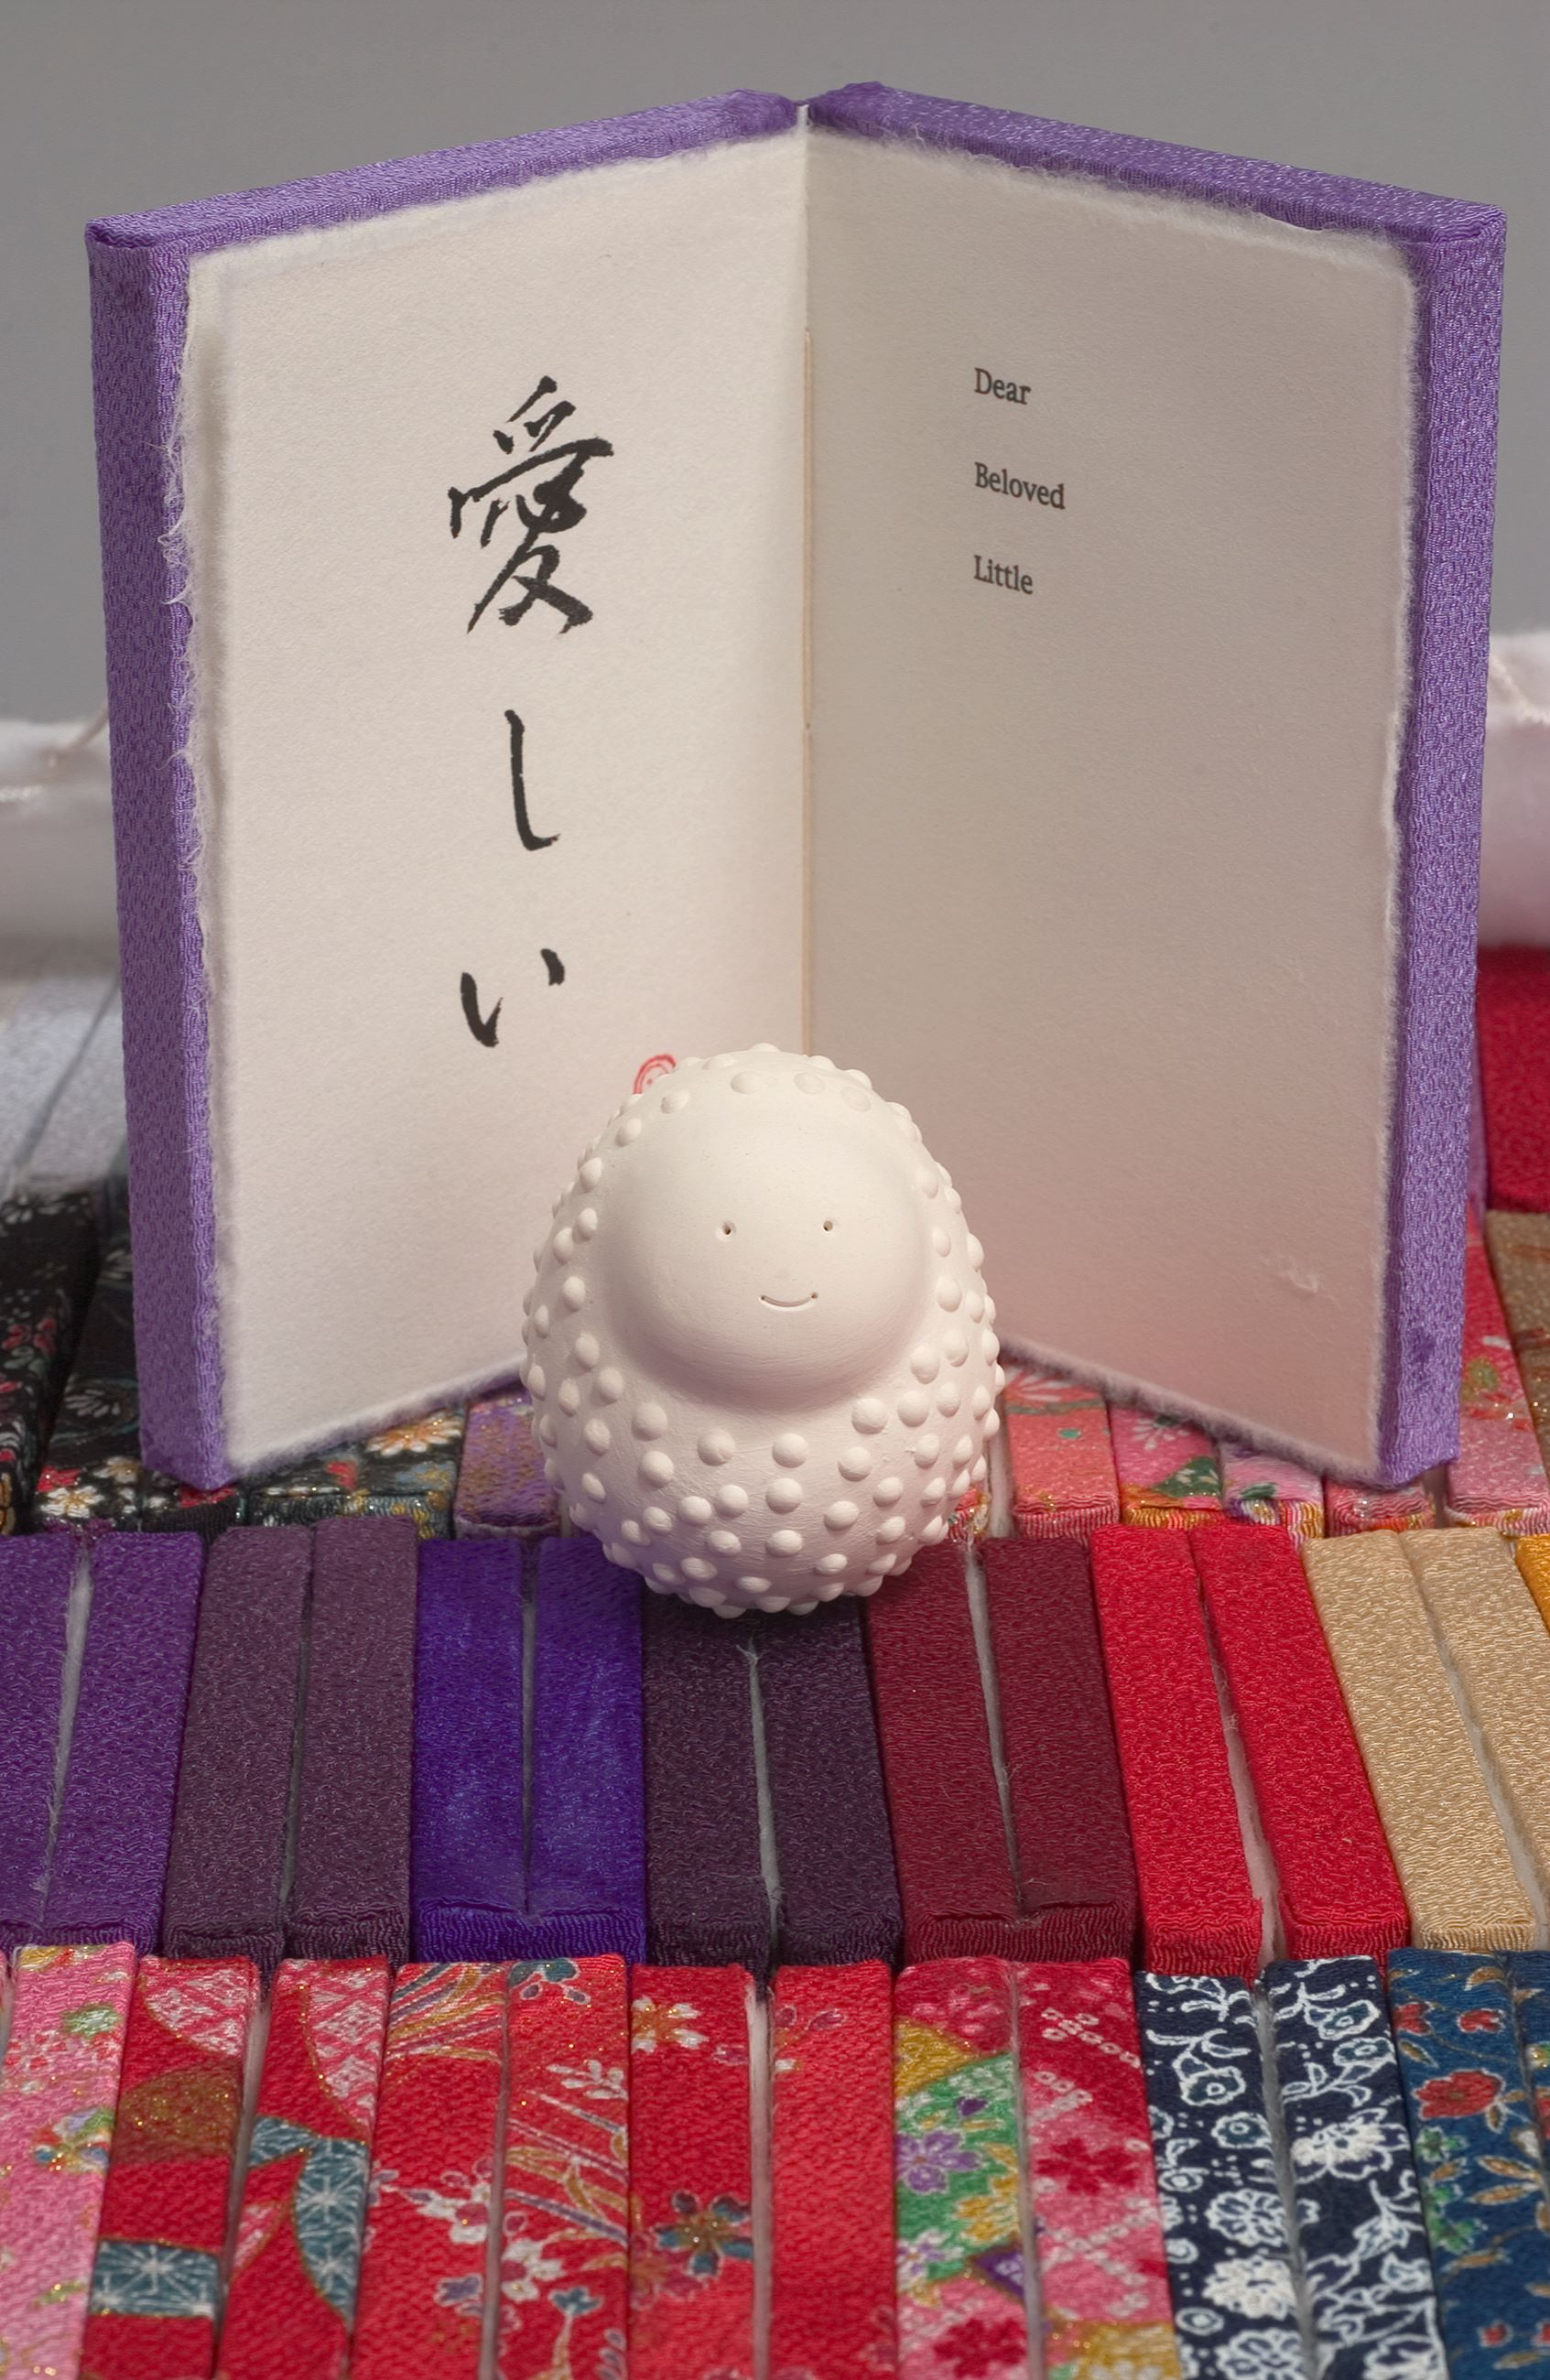 Image of Maegawa's hand made book, open with Daruma doll in front